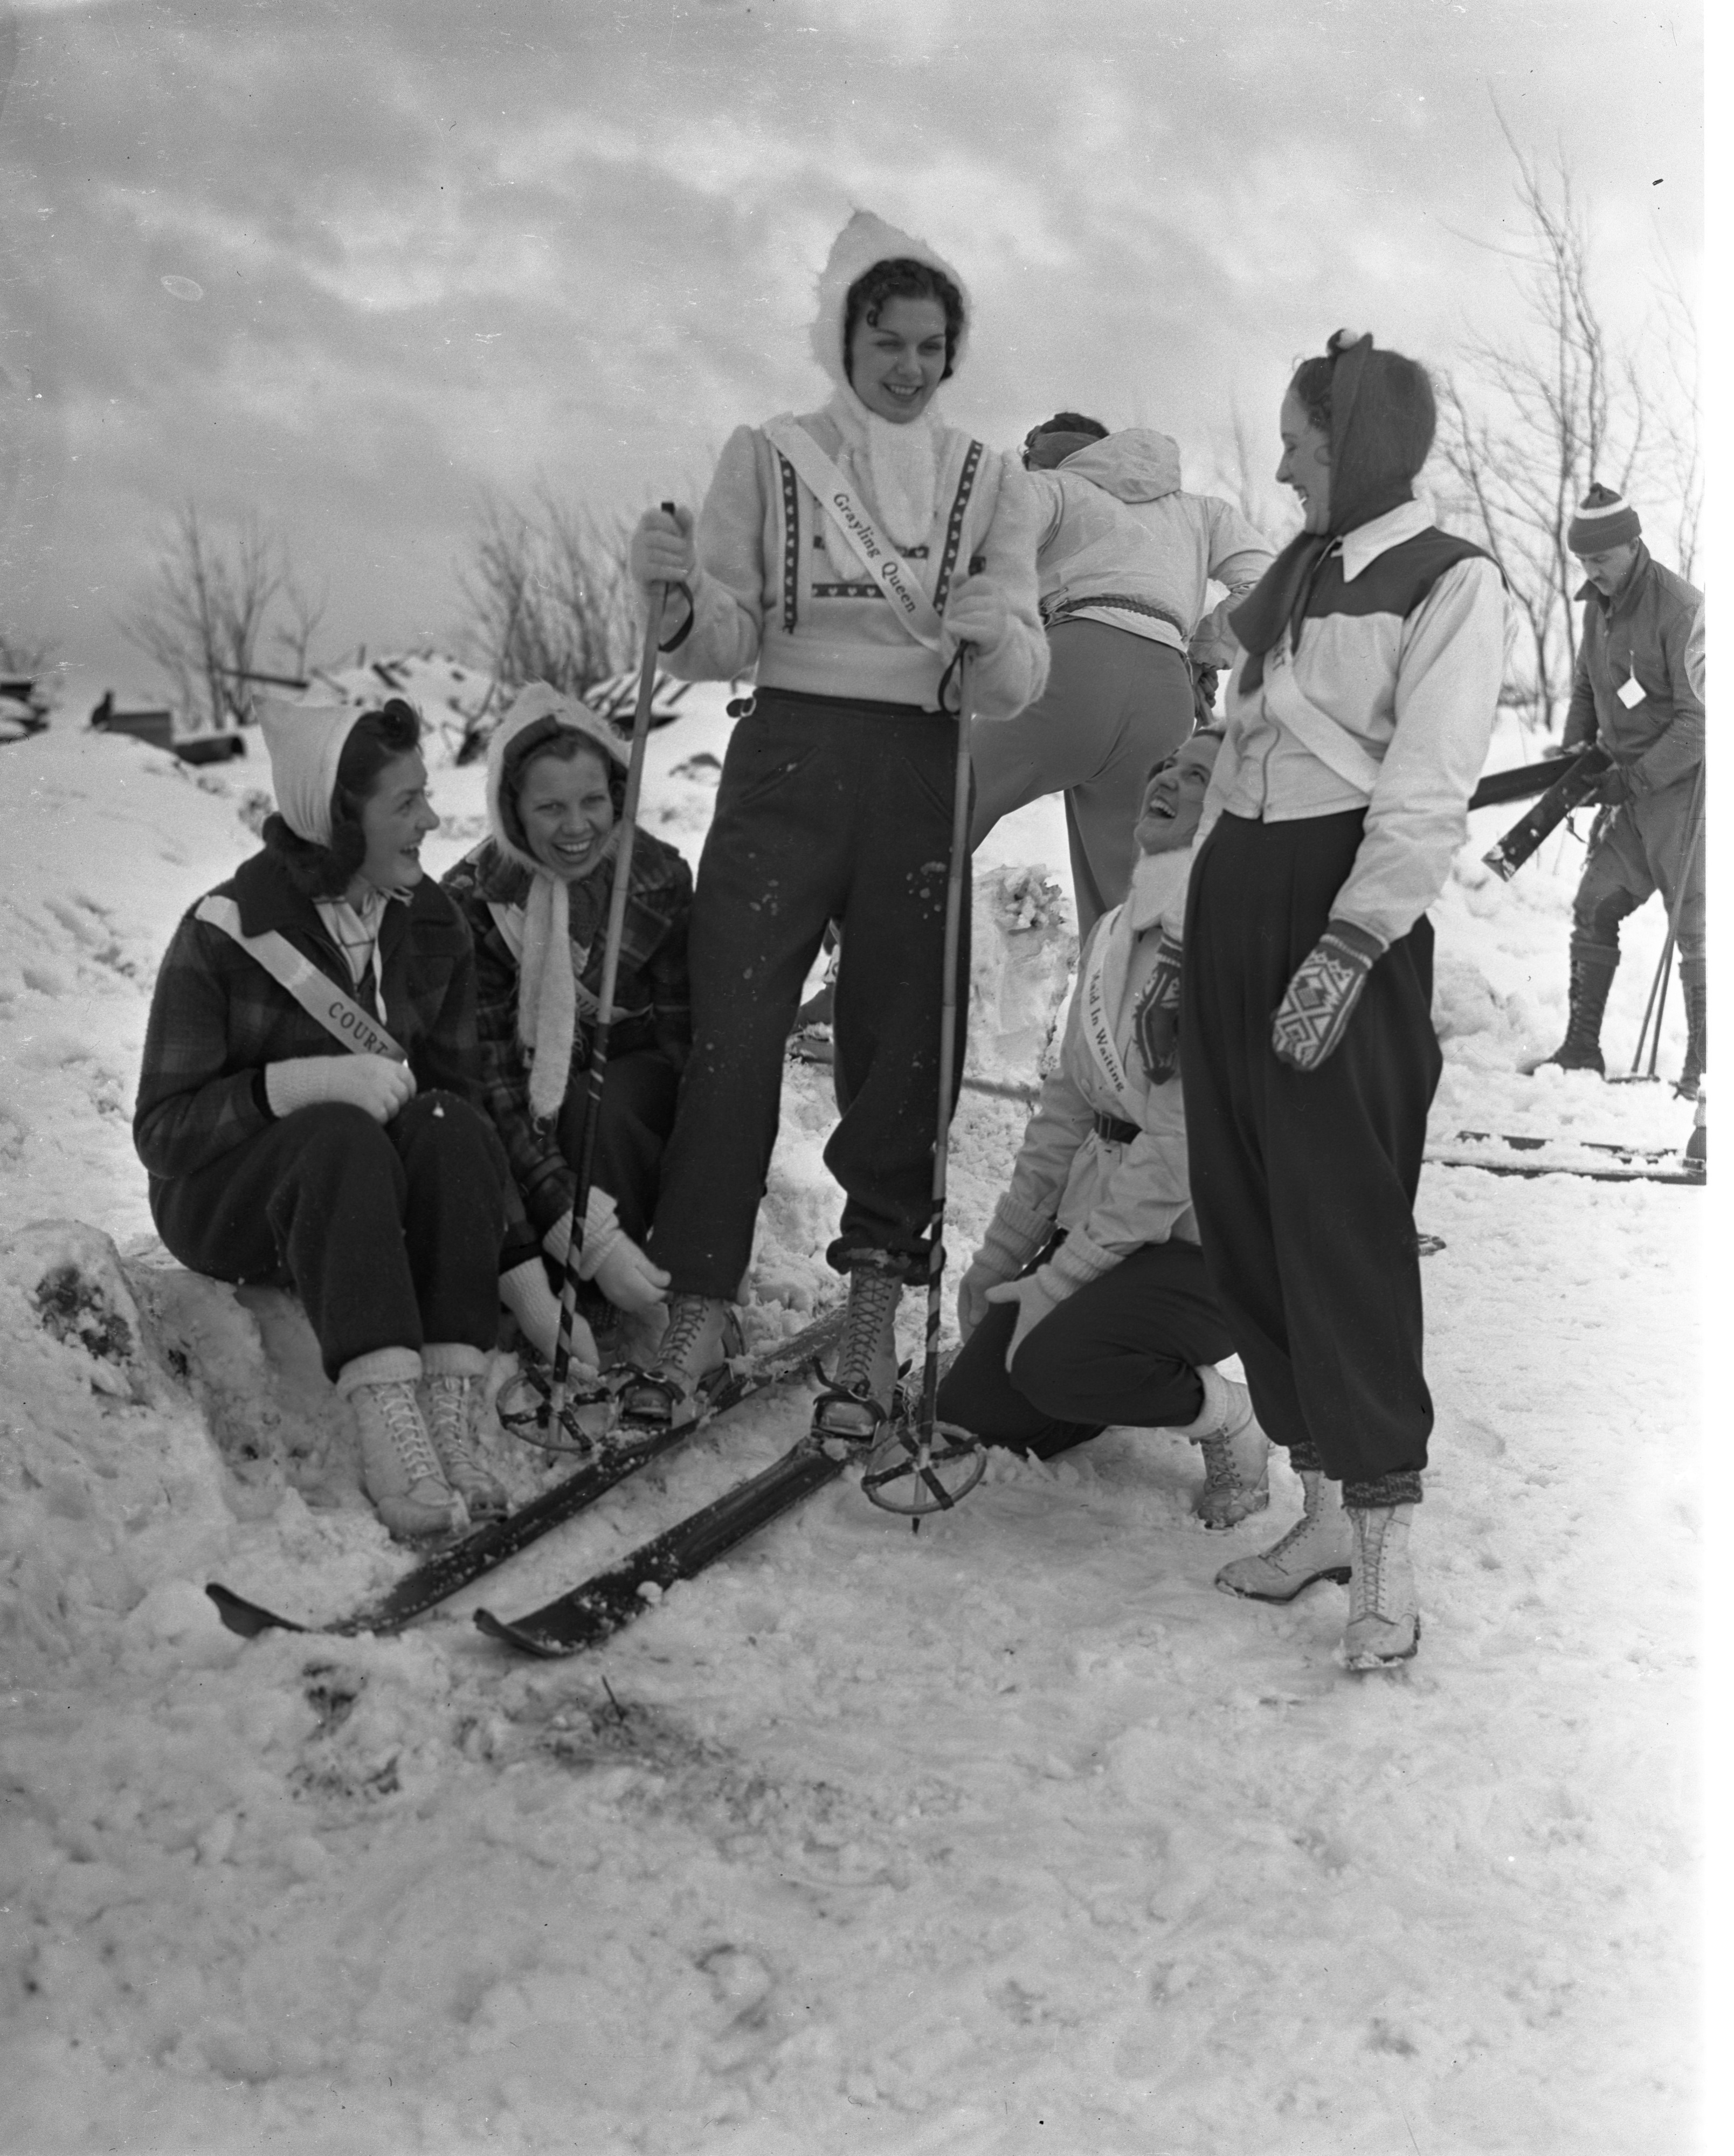 Grayling Snow Queen Pauline Merrill On Skis Surrounded By Her Court, January 1940 image